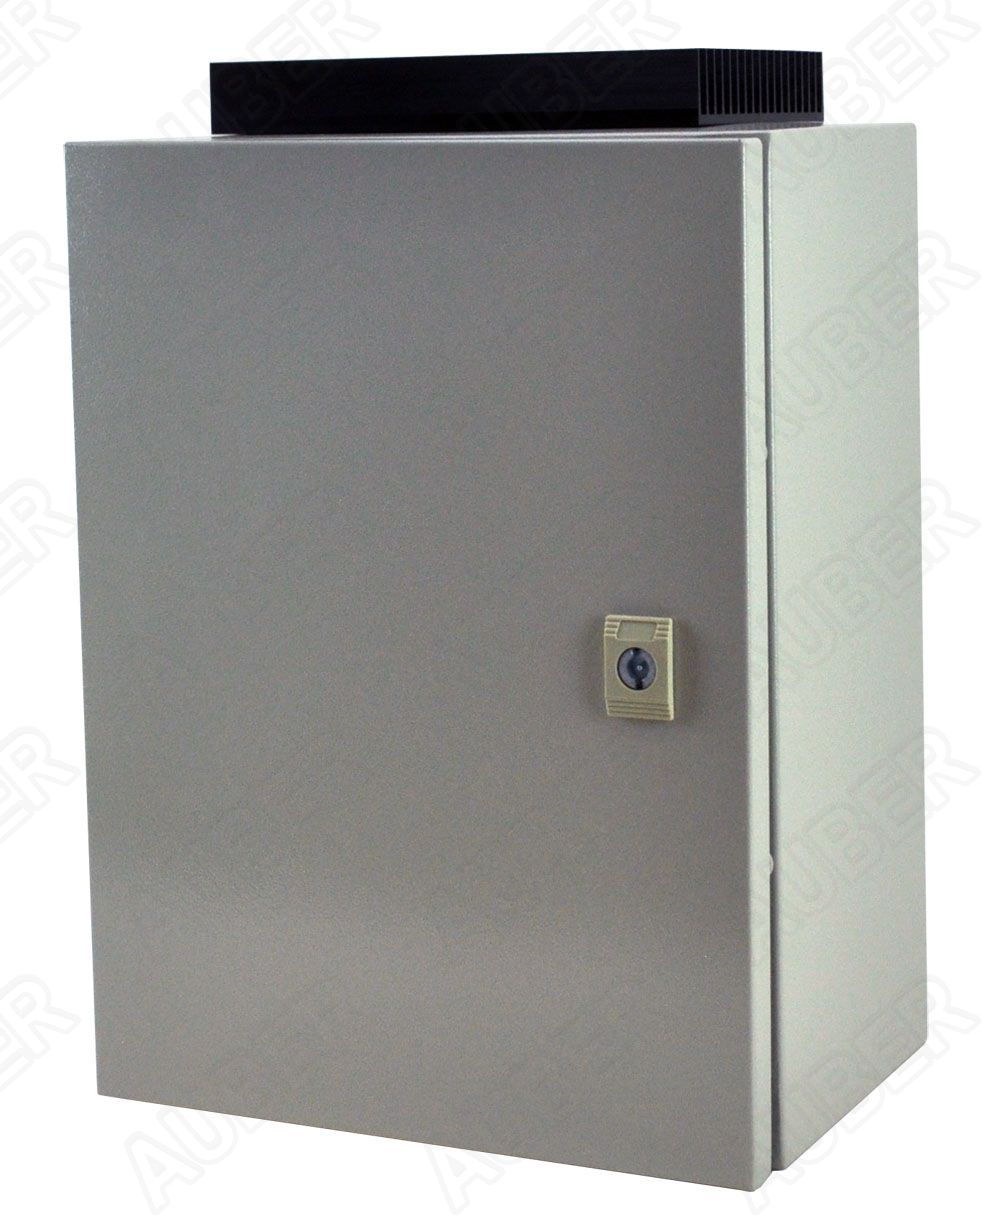 Wall Mount Box For Three Controllers 16x12x8 B403020